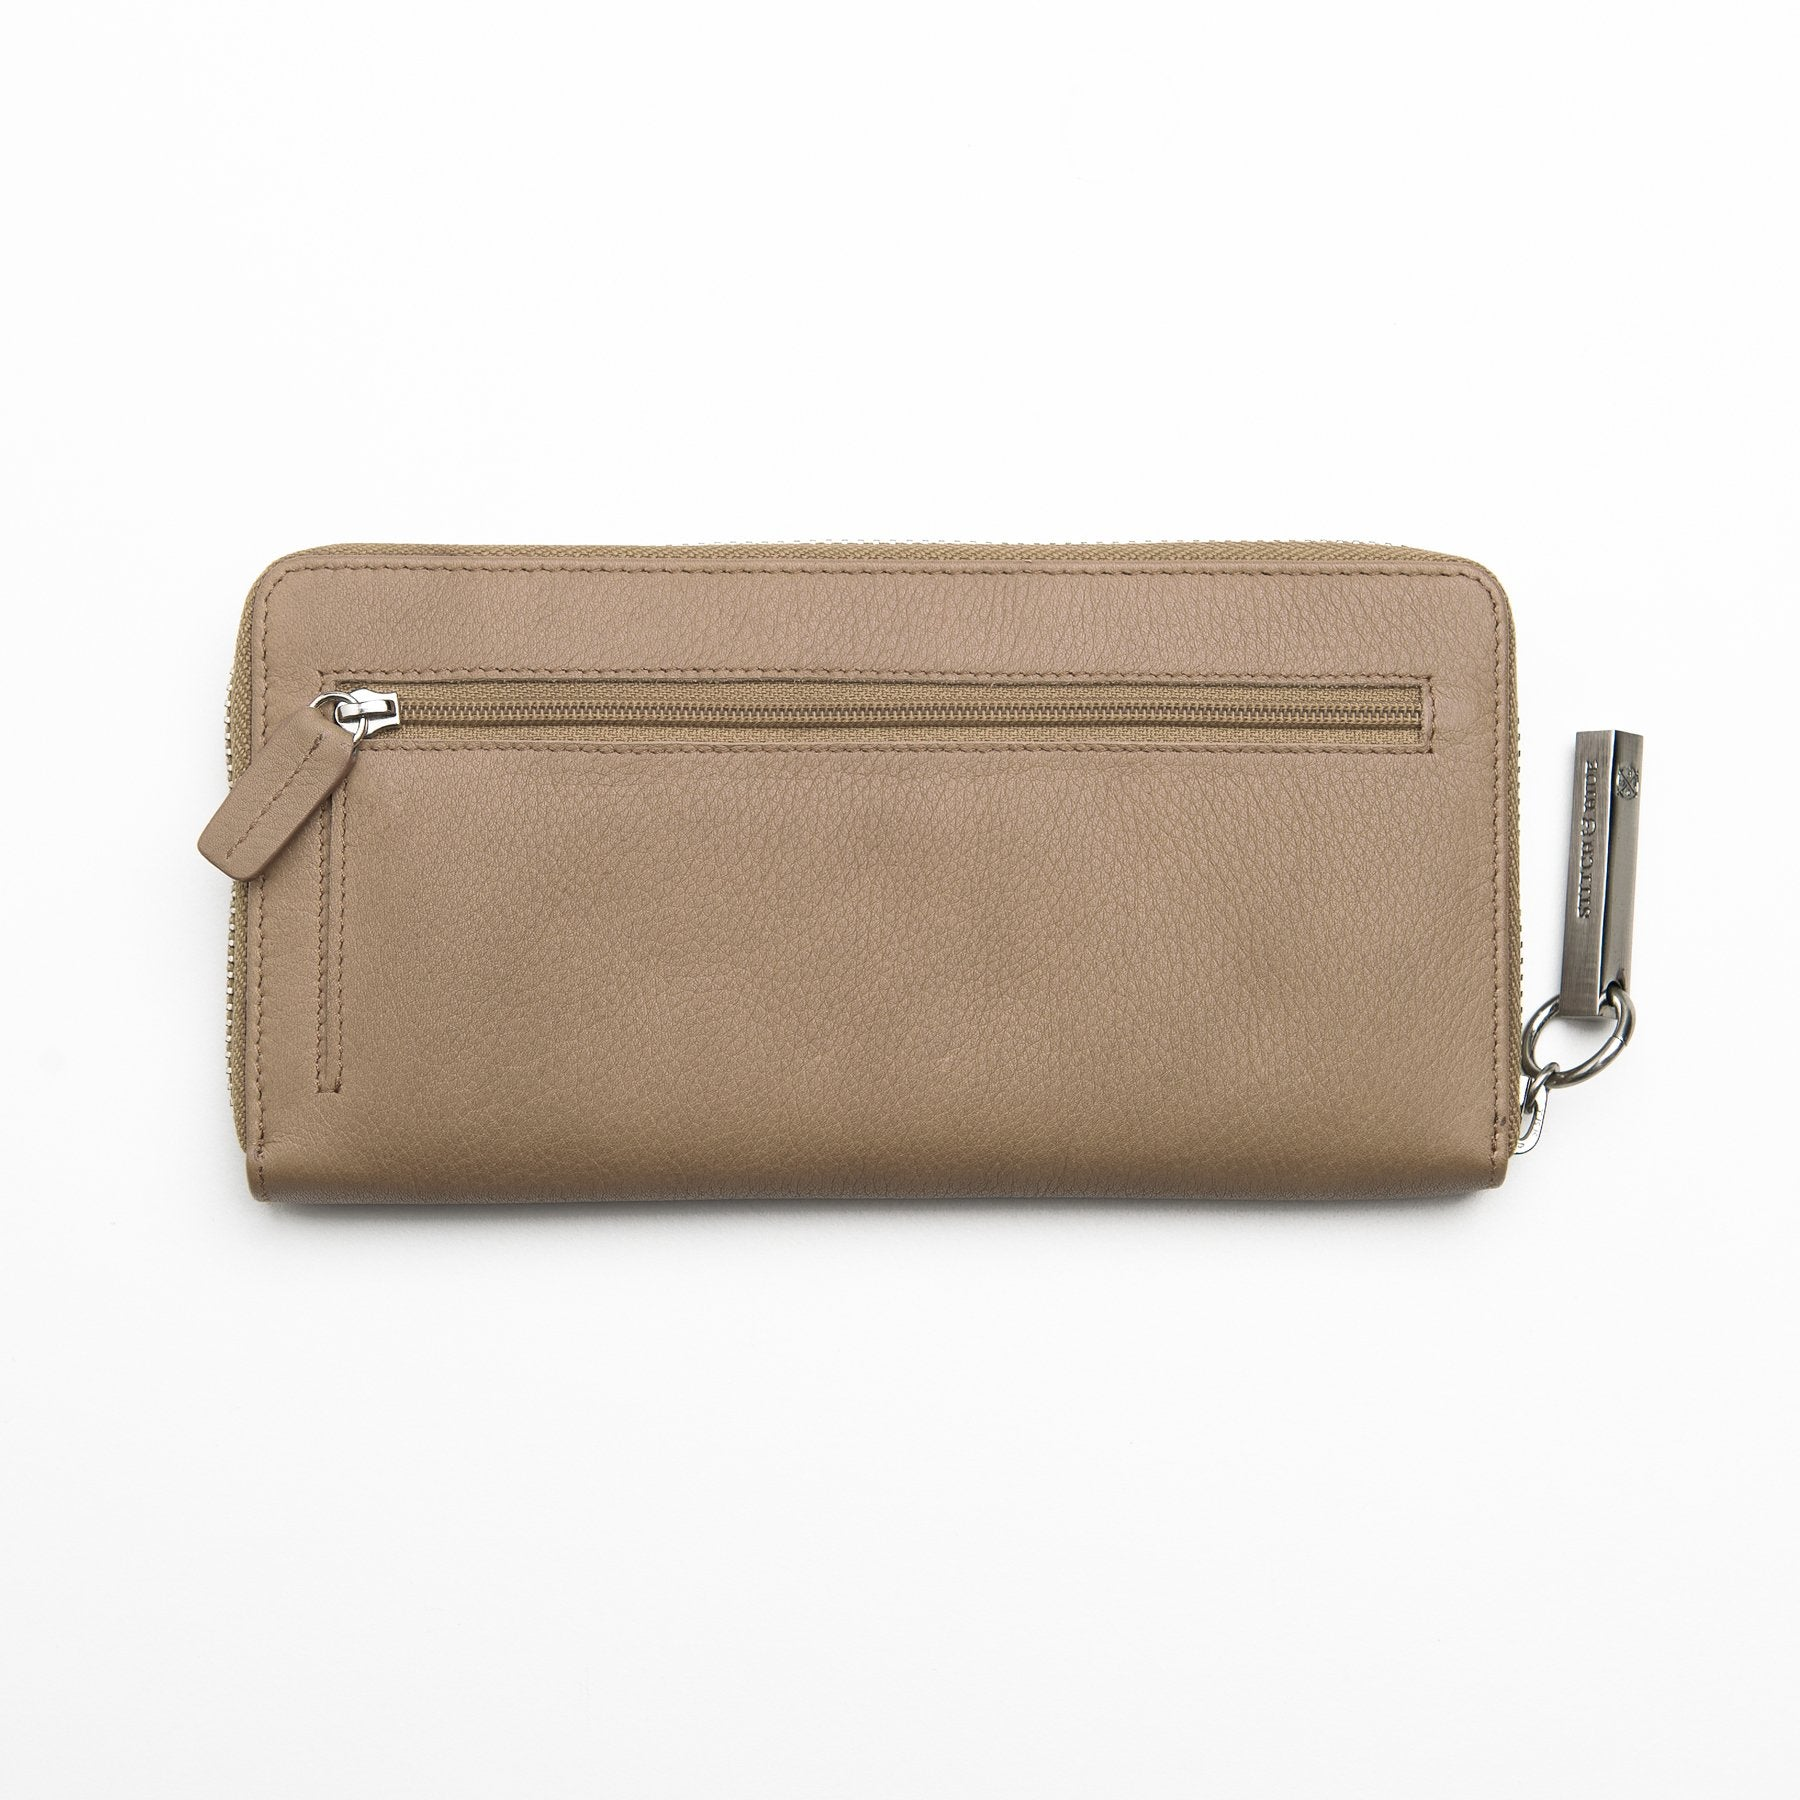 Christina Wallet - Stitch & Hide